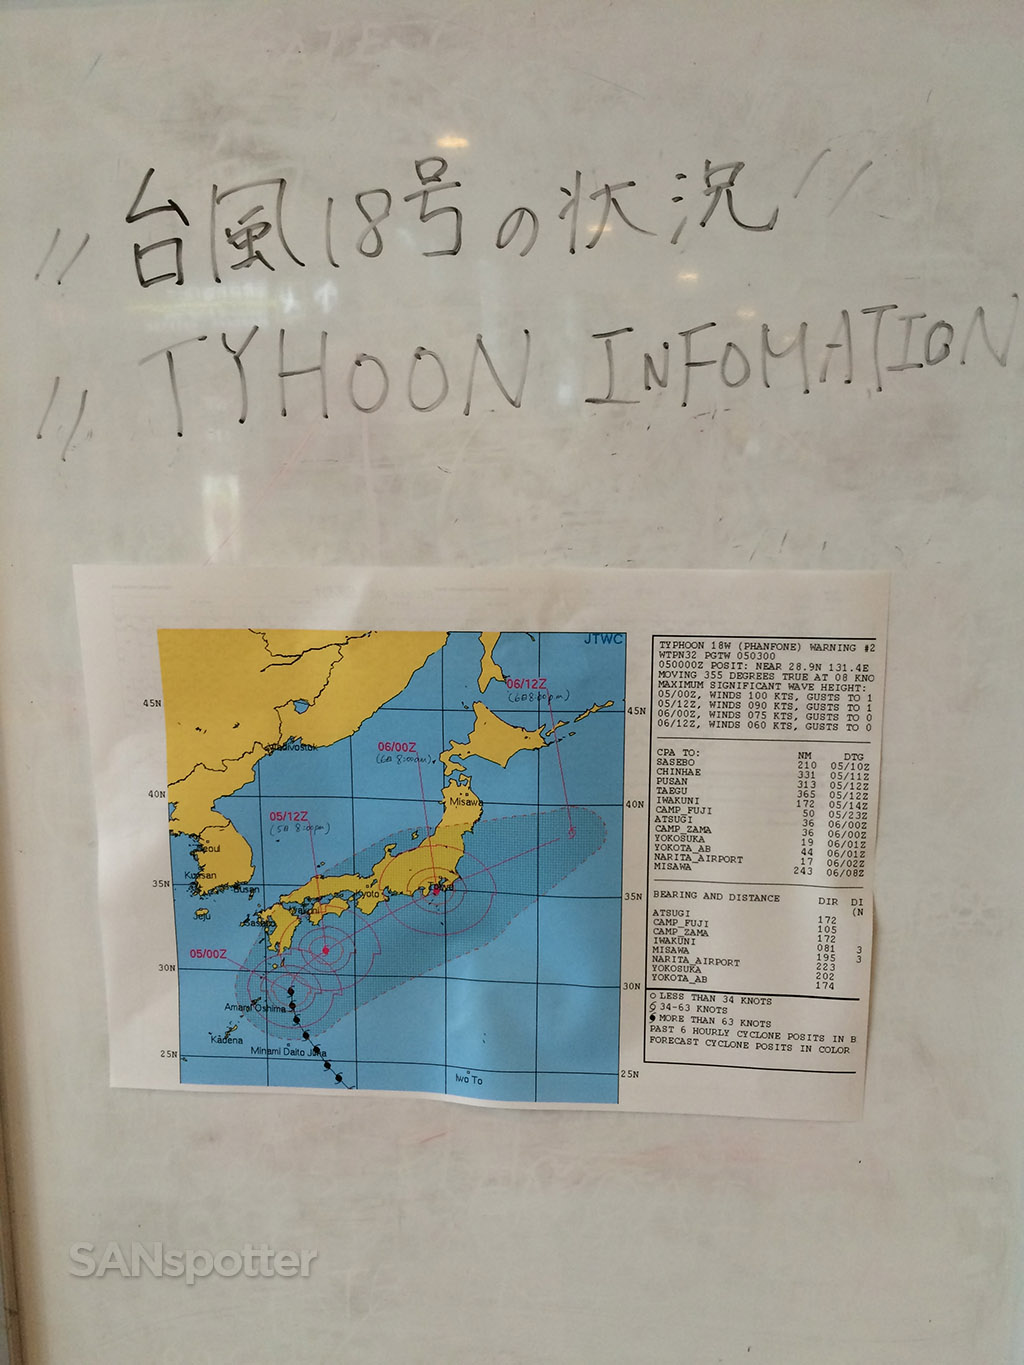 Typhoon information board